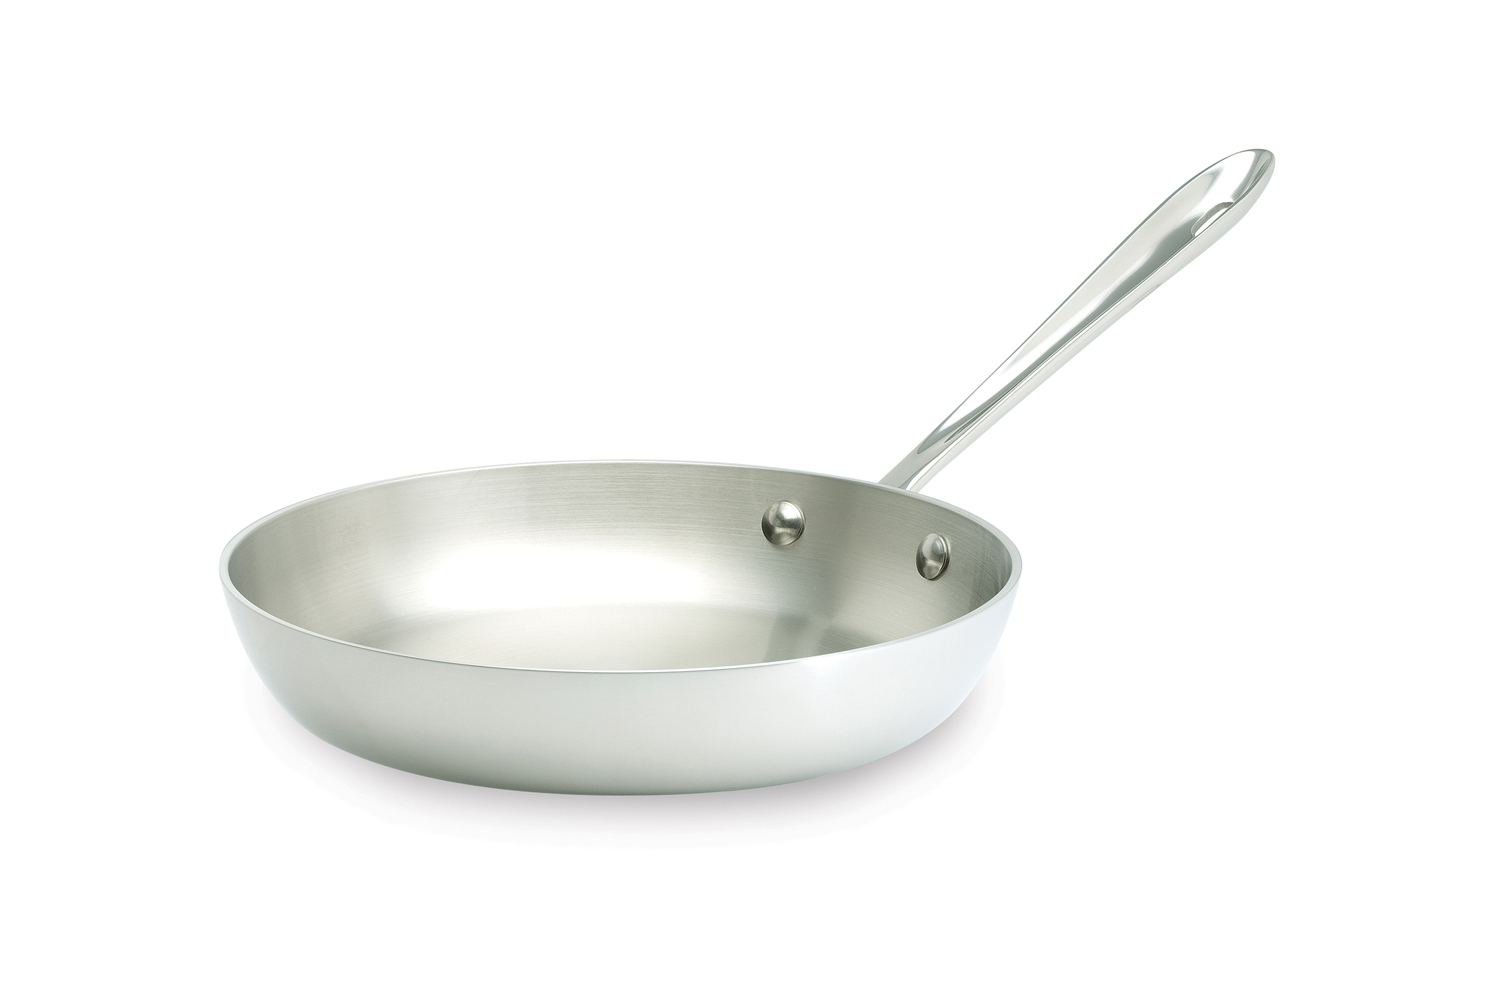 All-Clad d3 Tri-Ply Stainless Steel 9 inch French Skillet